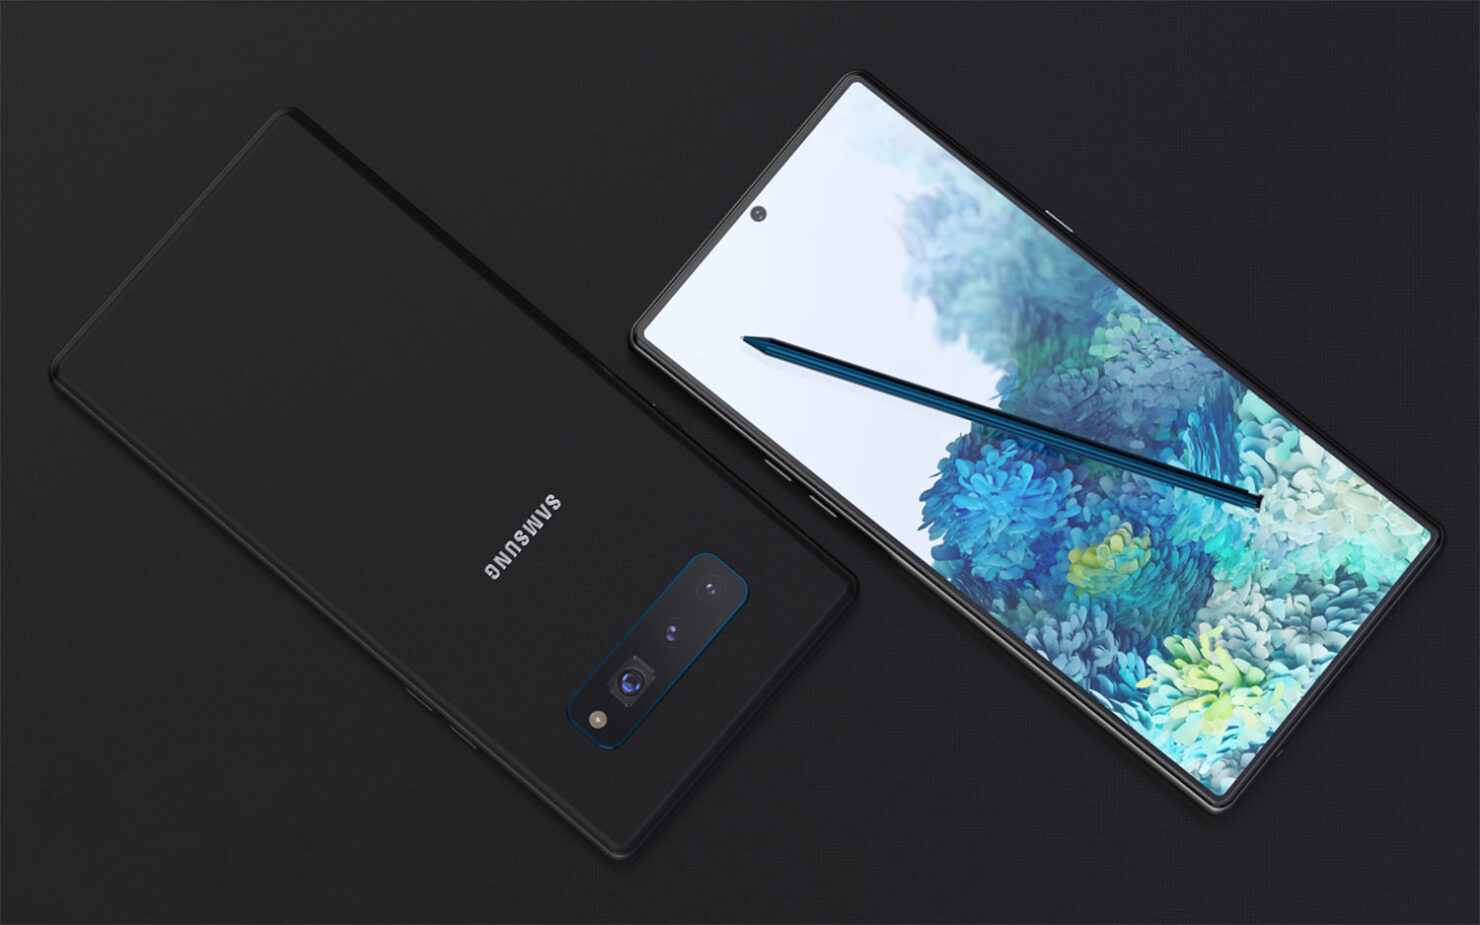 Galaxy Note 20 Design Spotted in Alleged Teaser - Image Shows Flagship Without Any Front-Facing Camera Cutout